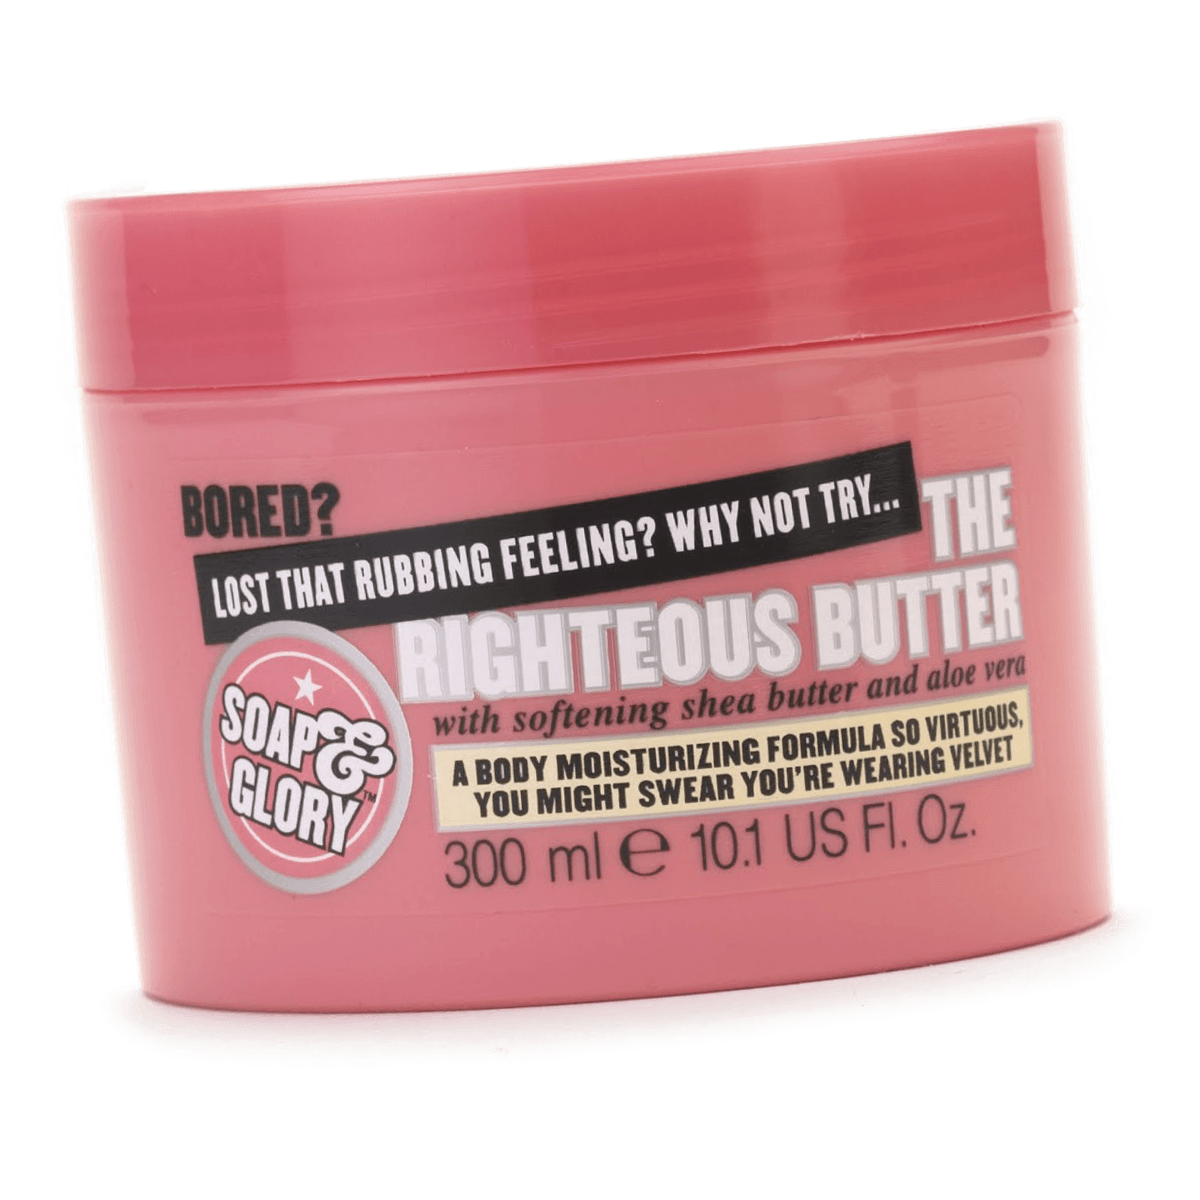 Soap & Glory products review: An adorable trio of bath goodies